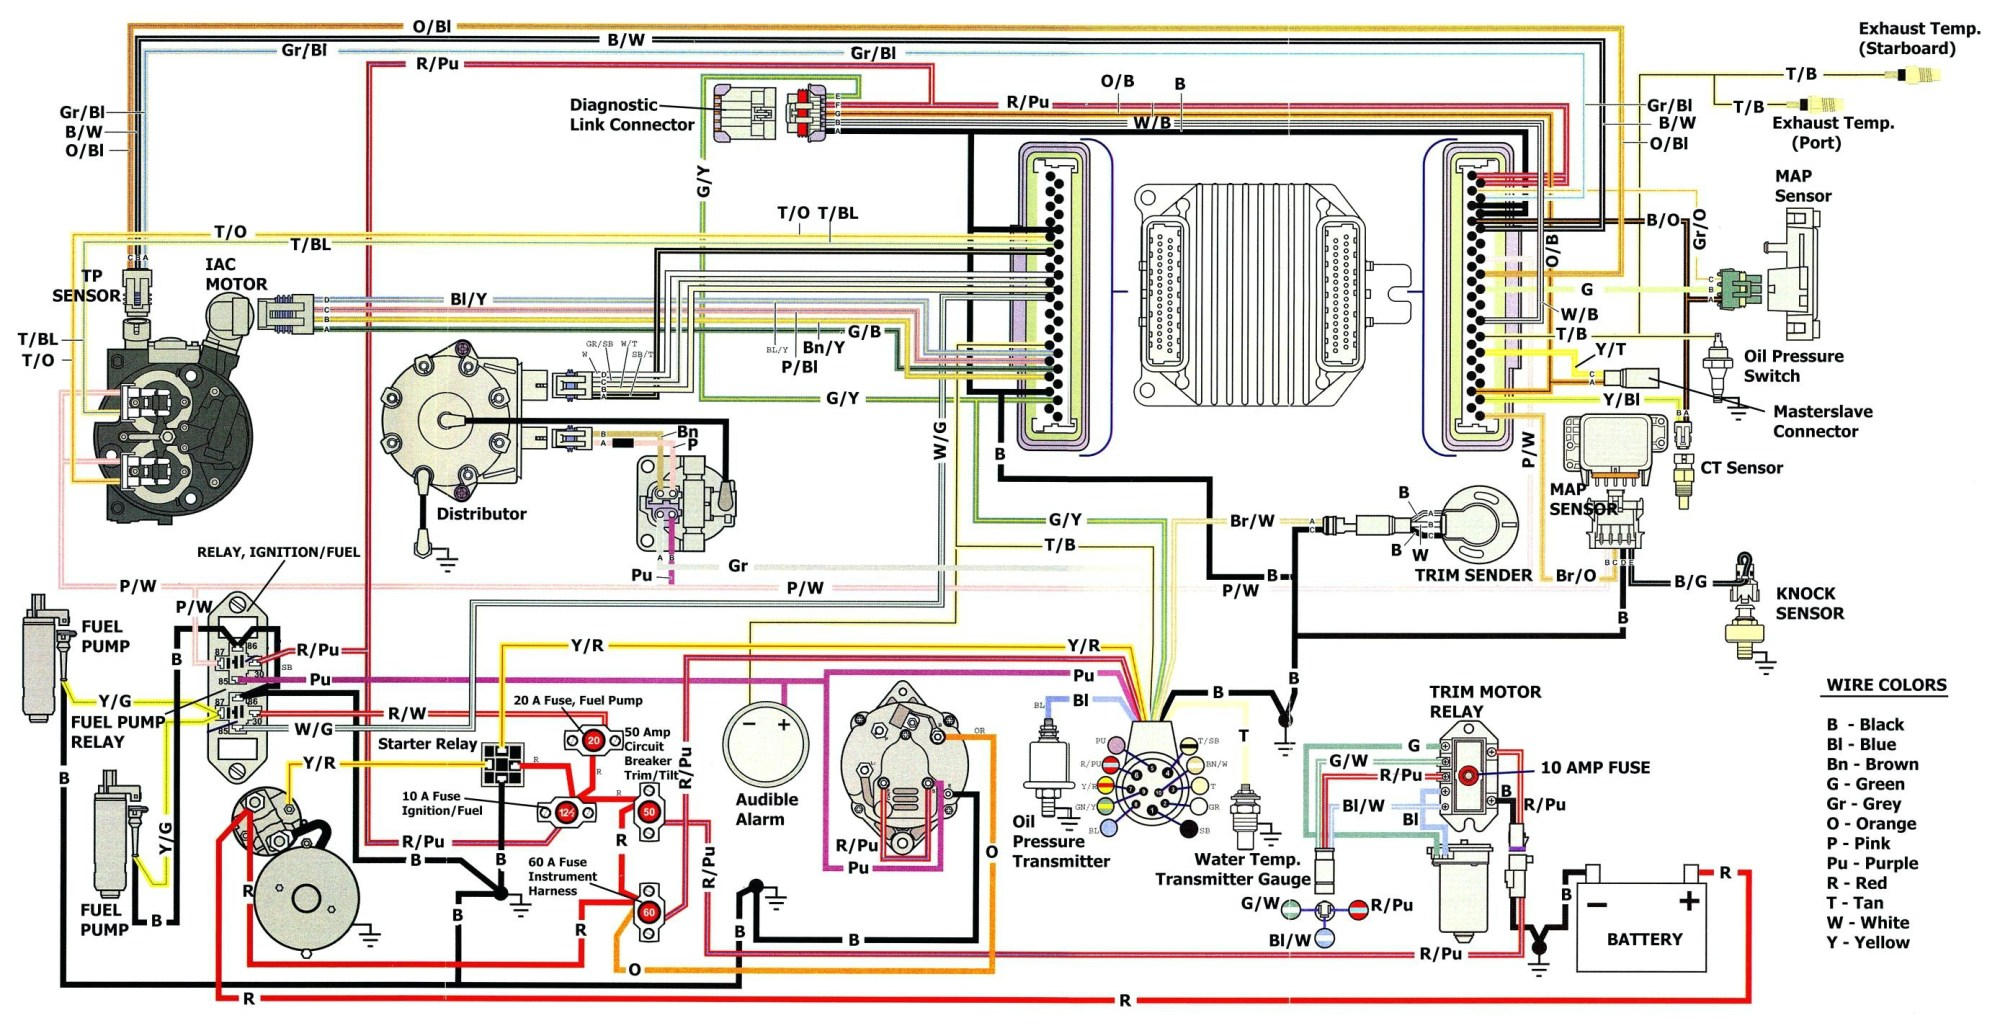 hight resolution of volvo xc70 engine diagram wiring diagram technicwrg 8228 volvo v70 engine diagramvolvo xc70 engine diagram